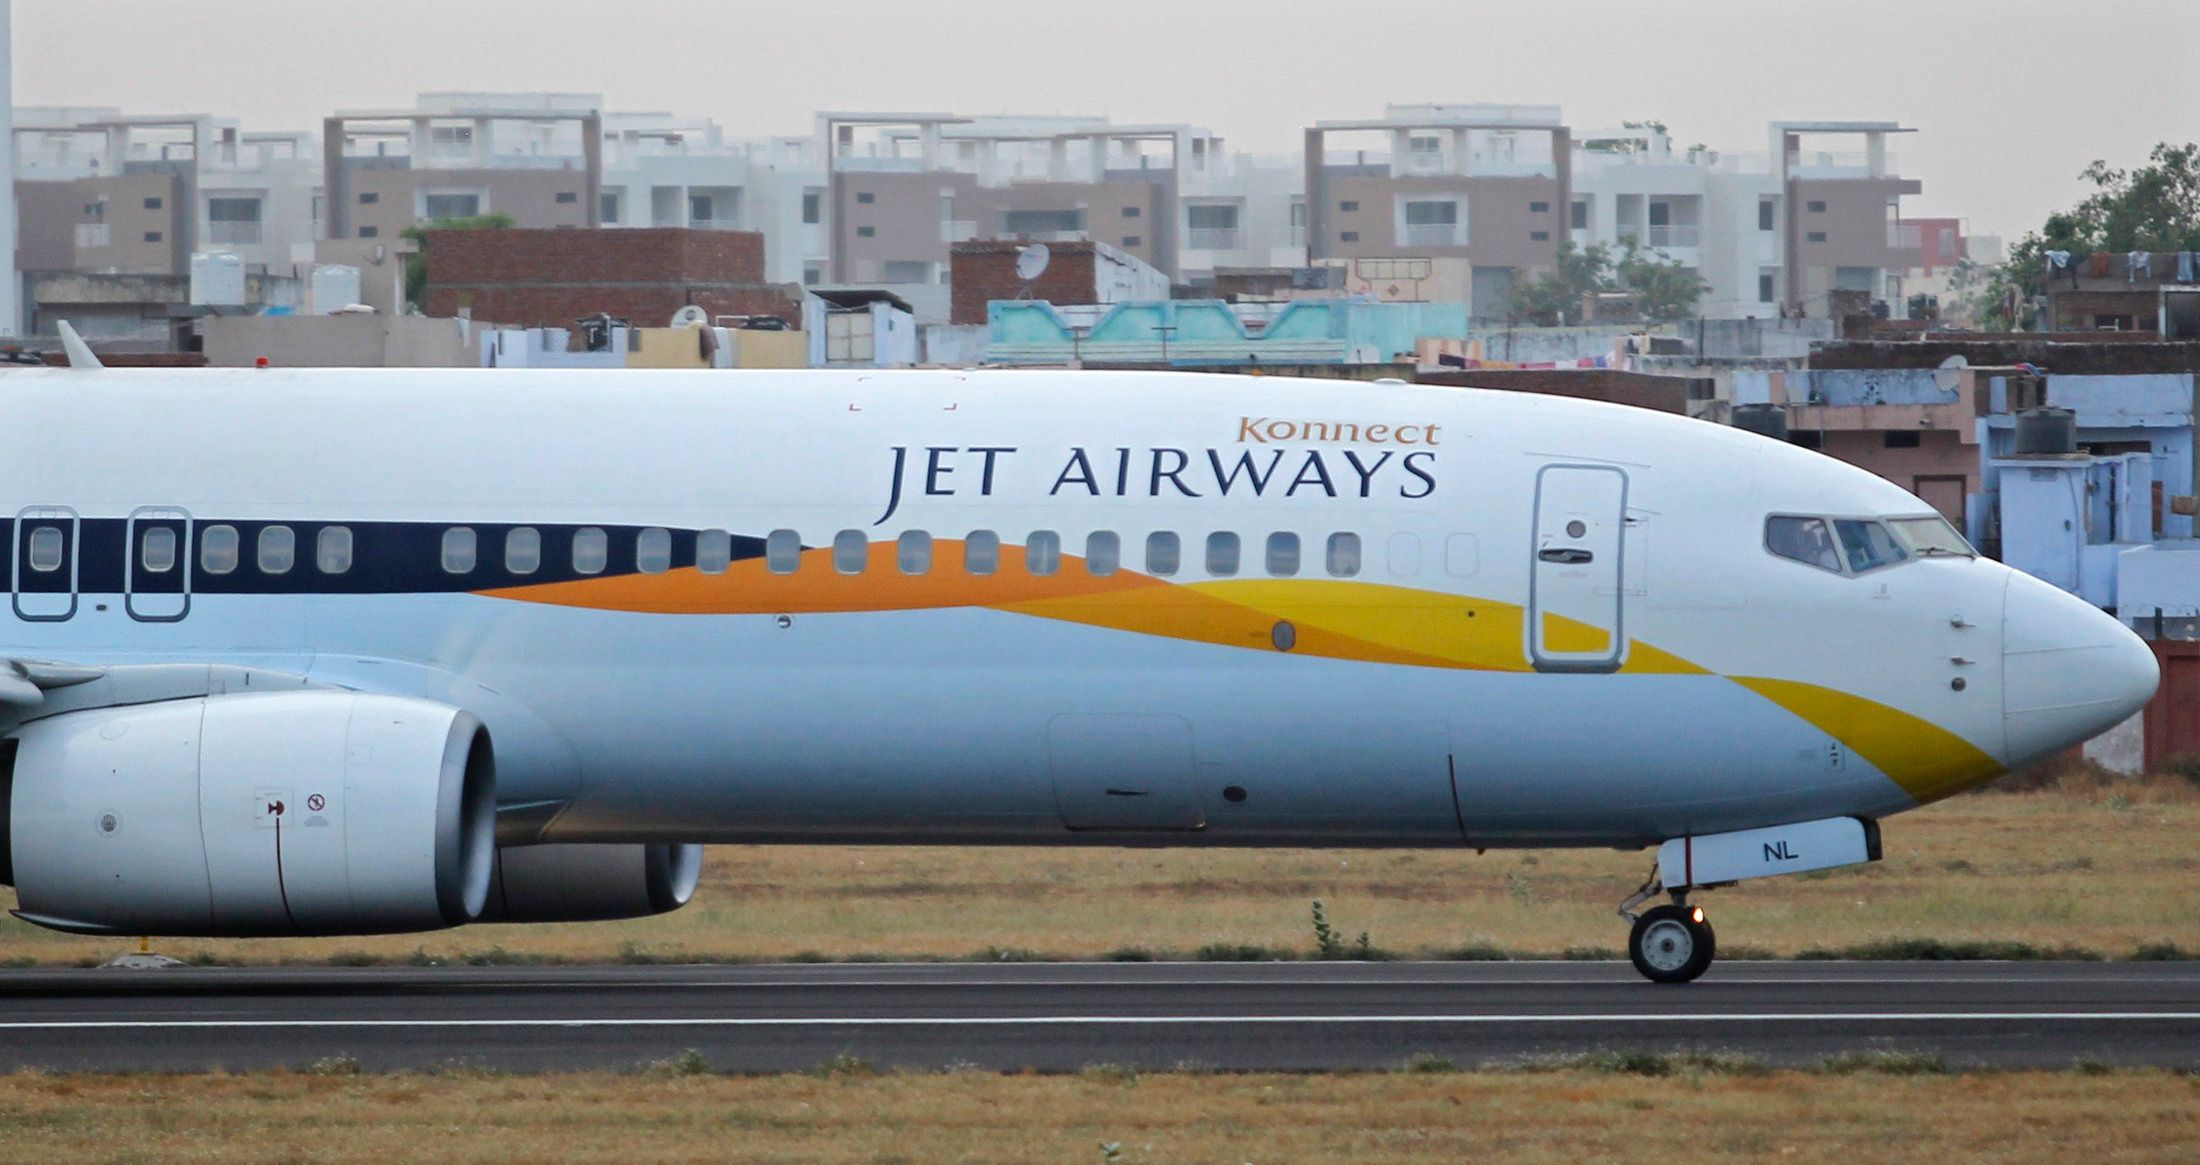 A baby has been given free airfare for life on Jet Airways after being born on one of their planes.